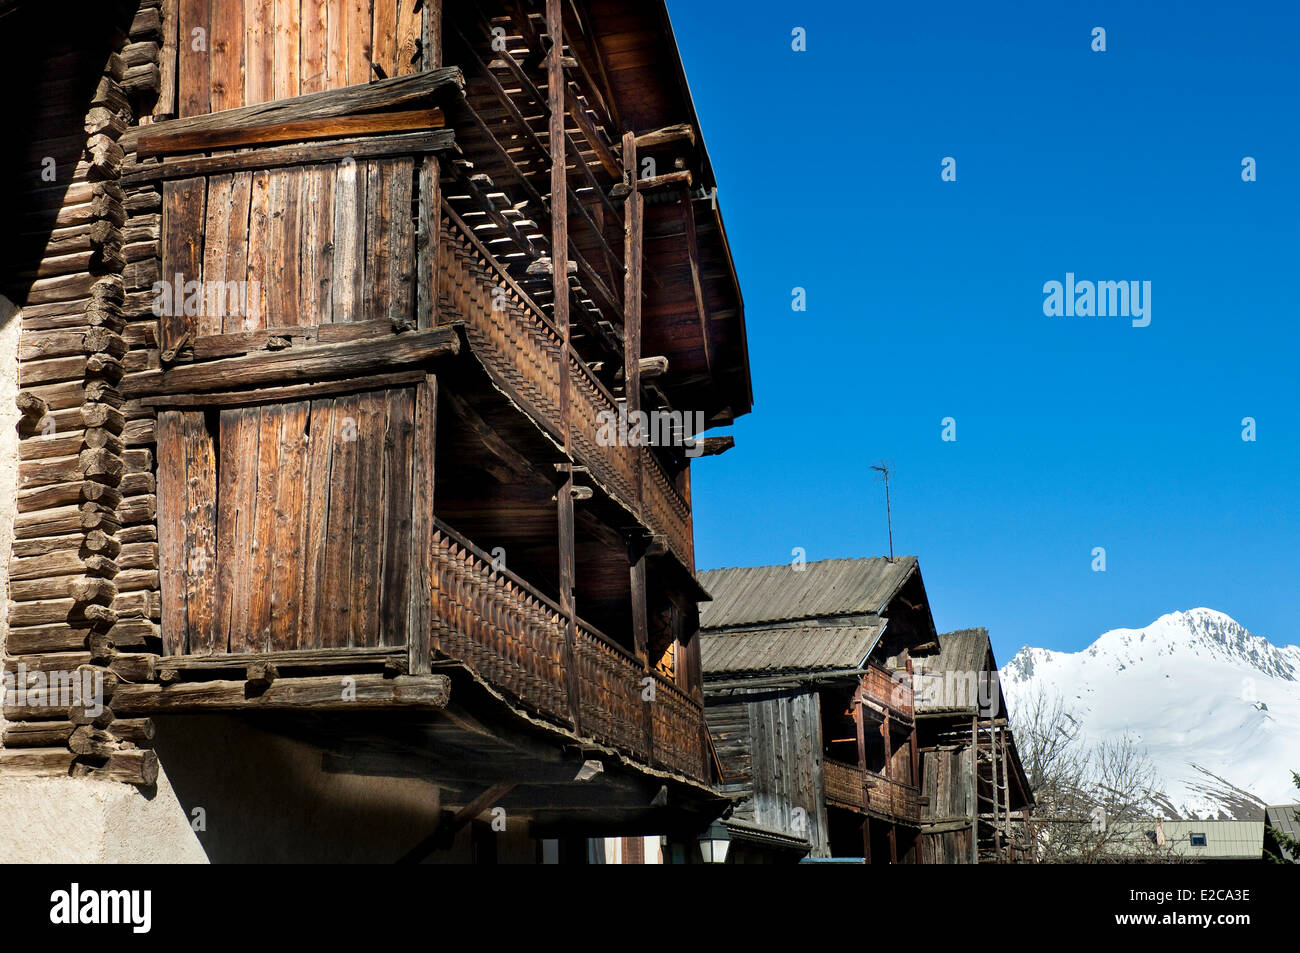 France, Hautes Alpes, Regional Natural Park of Queyras, Molines en Queyras, traditional houses in Pierre Grosse - Stock Image